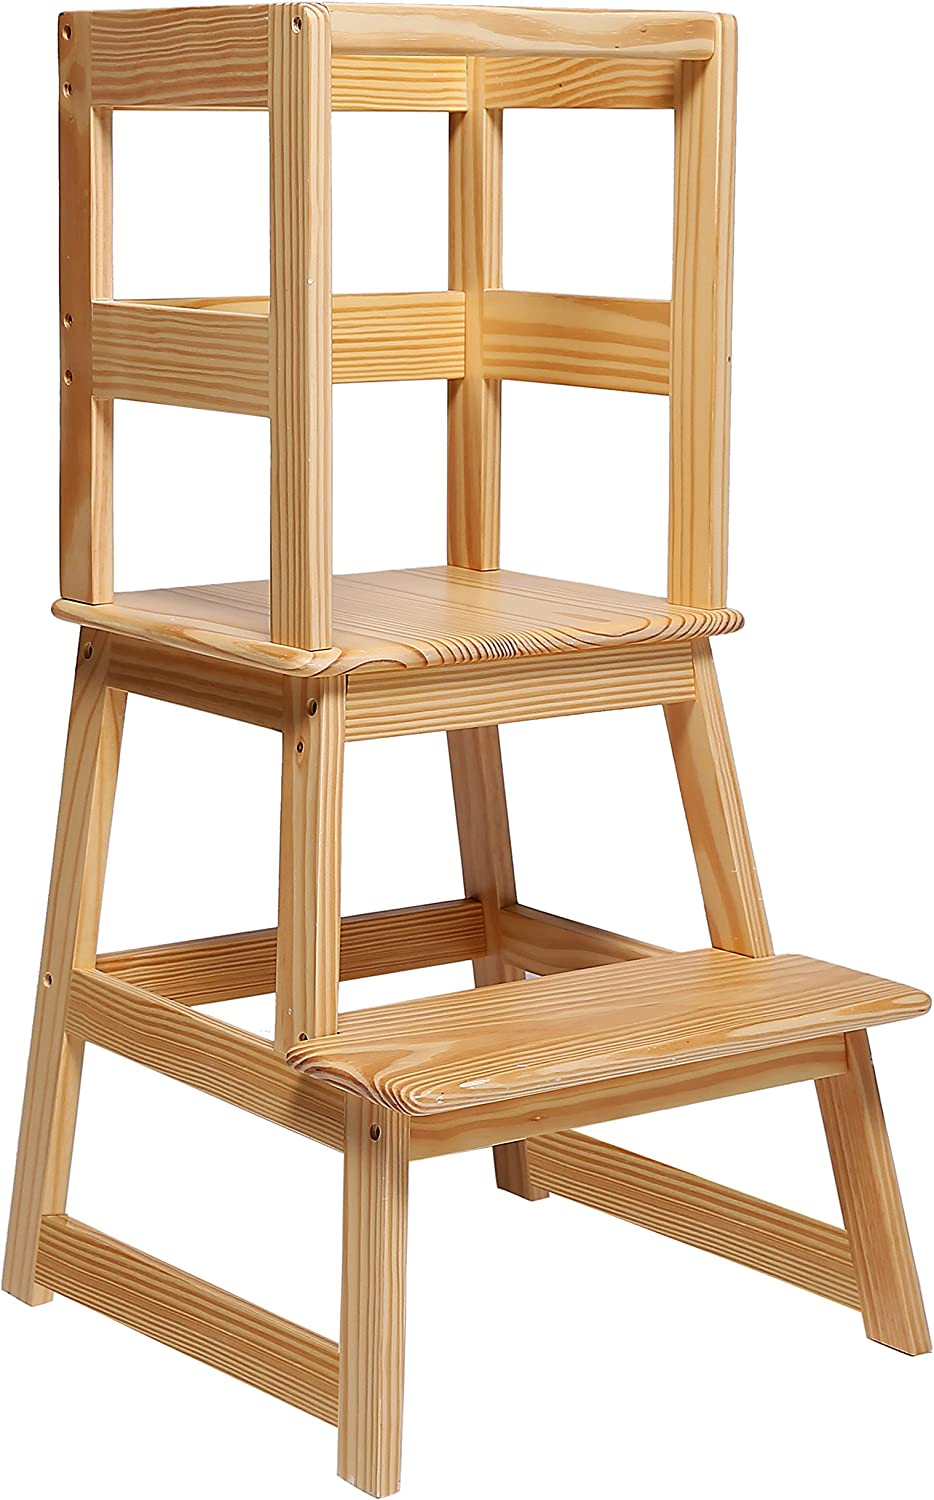 SDADI Kids Kitchen Step Ranking TOP7 Stool Minneapolis Mall with Safety Toddlers - for 18 Rail